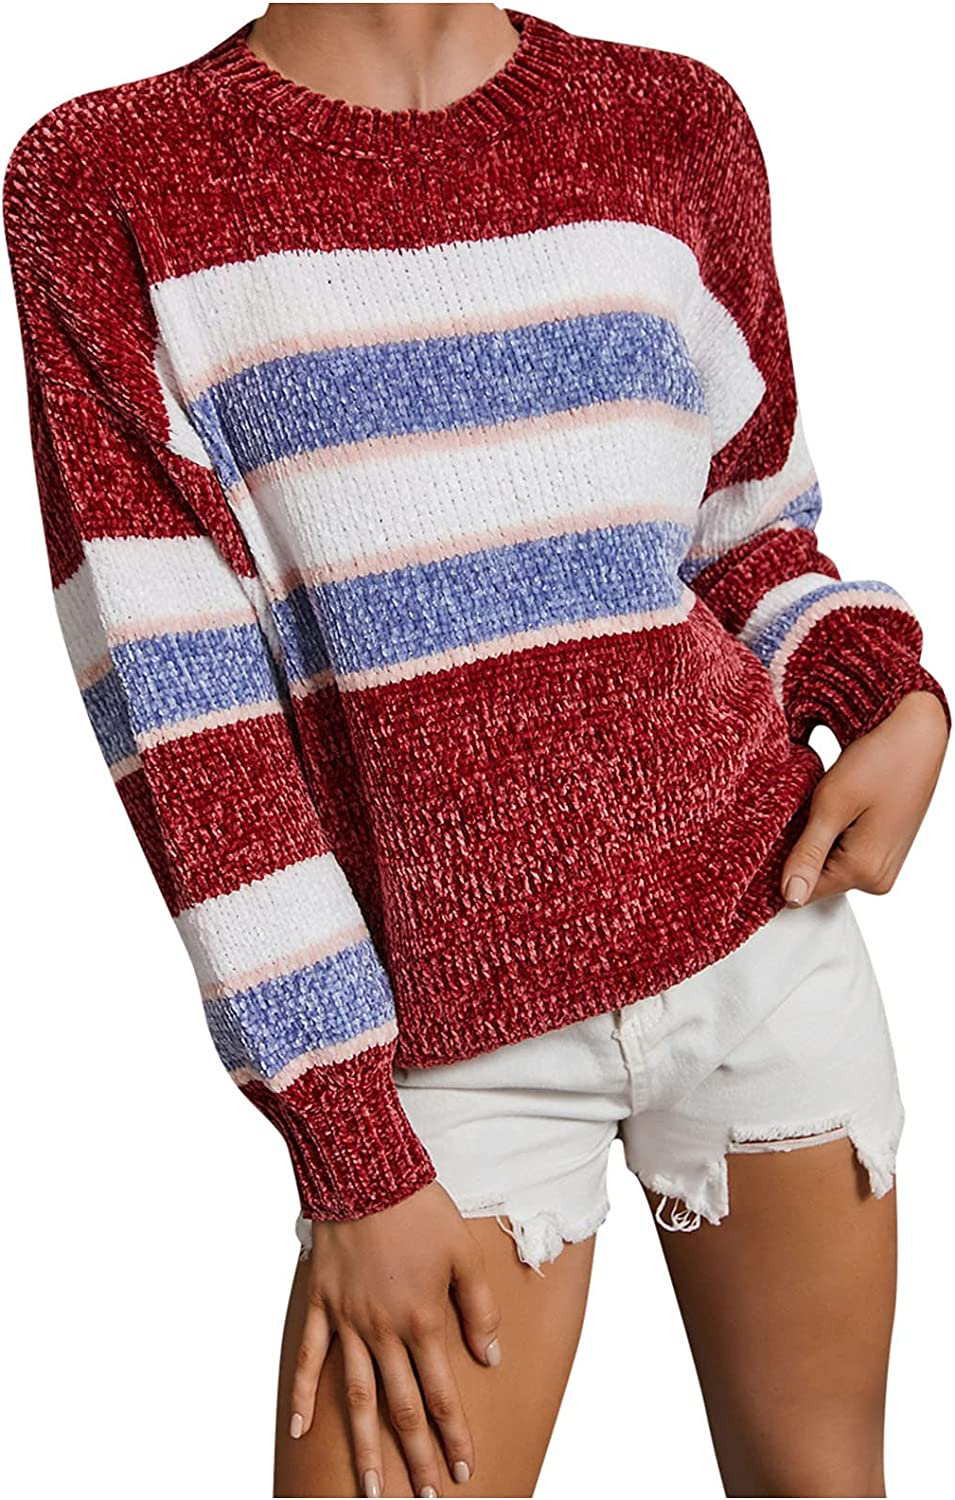 Ugly Finally resale start Christmas Sweaters for Women Casual C Max 84% OFF Loose Red Color Block